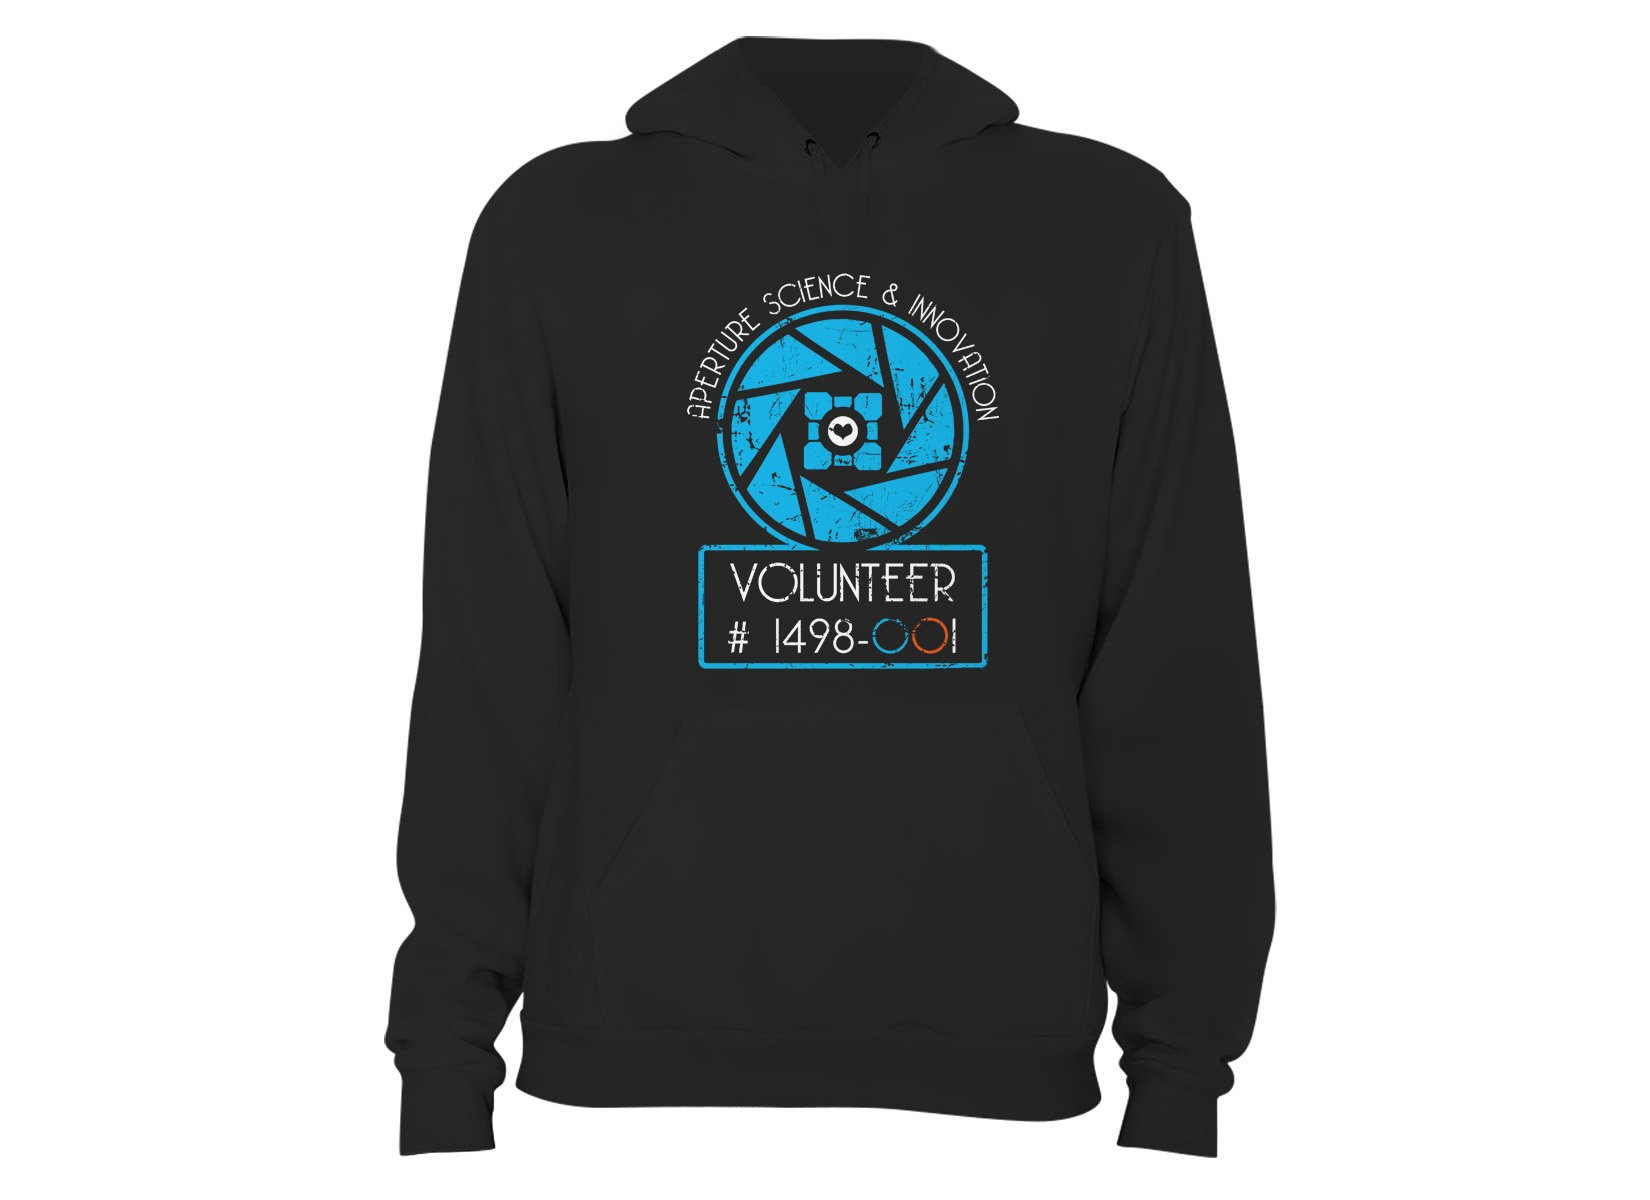 Aperture Science Volunteer on Hoodie